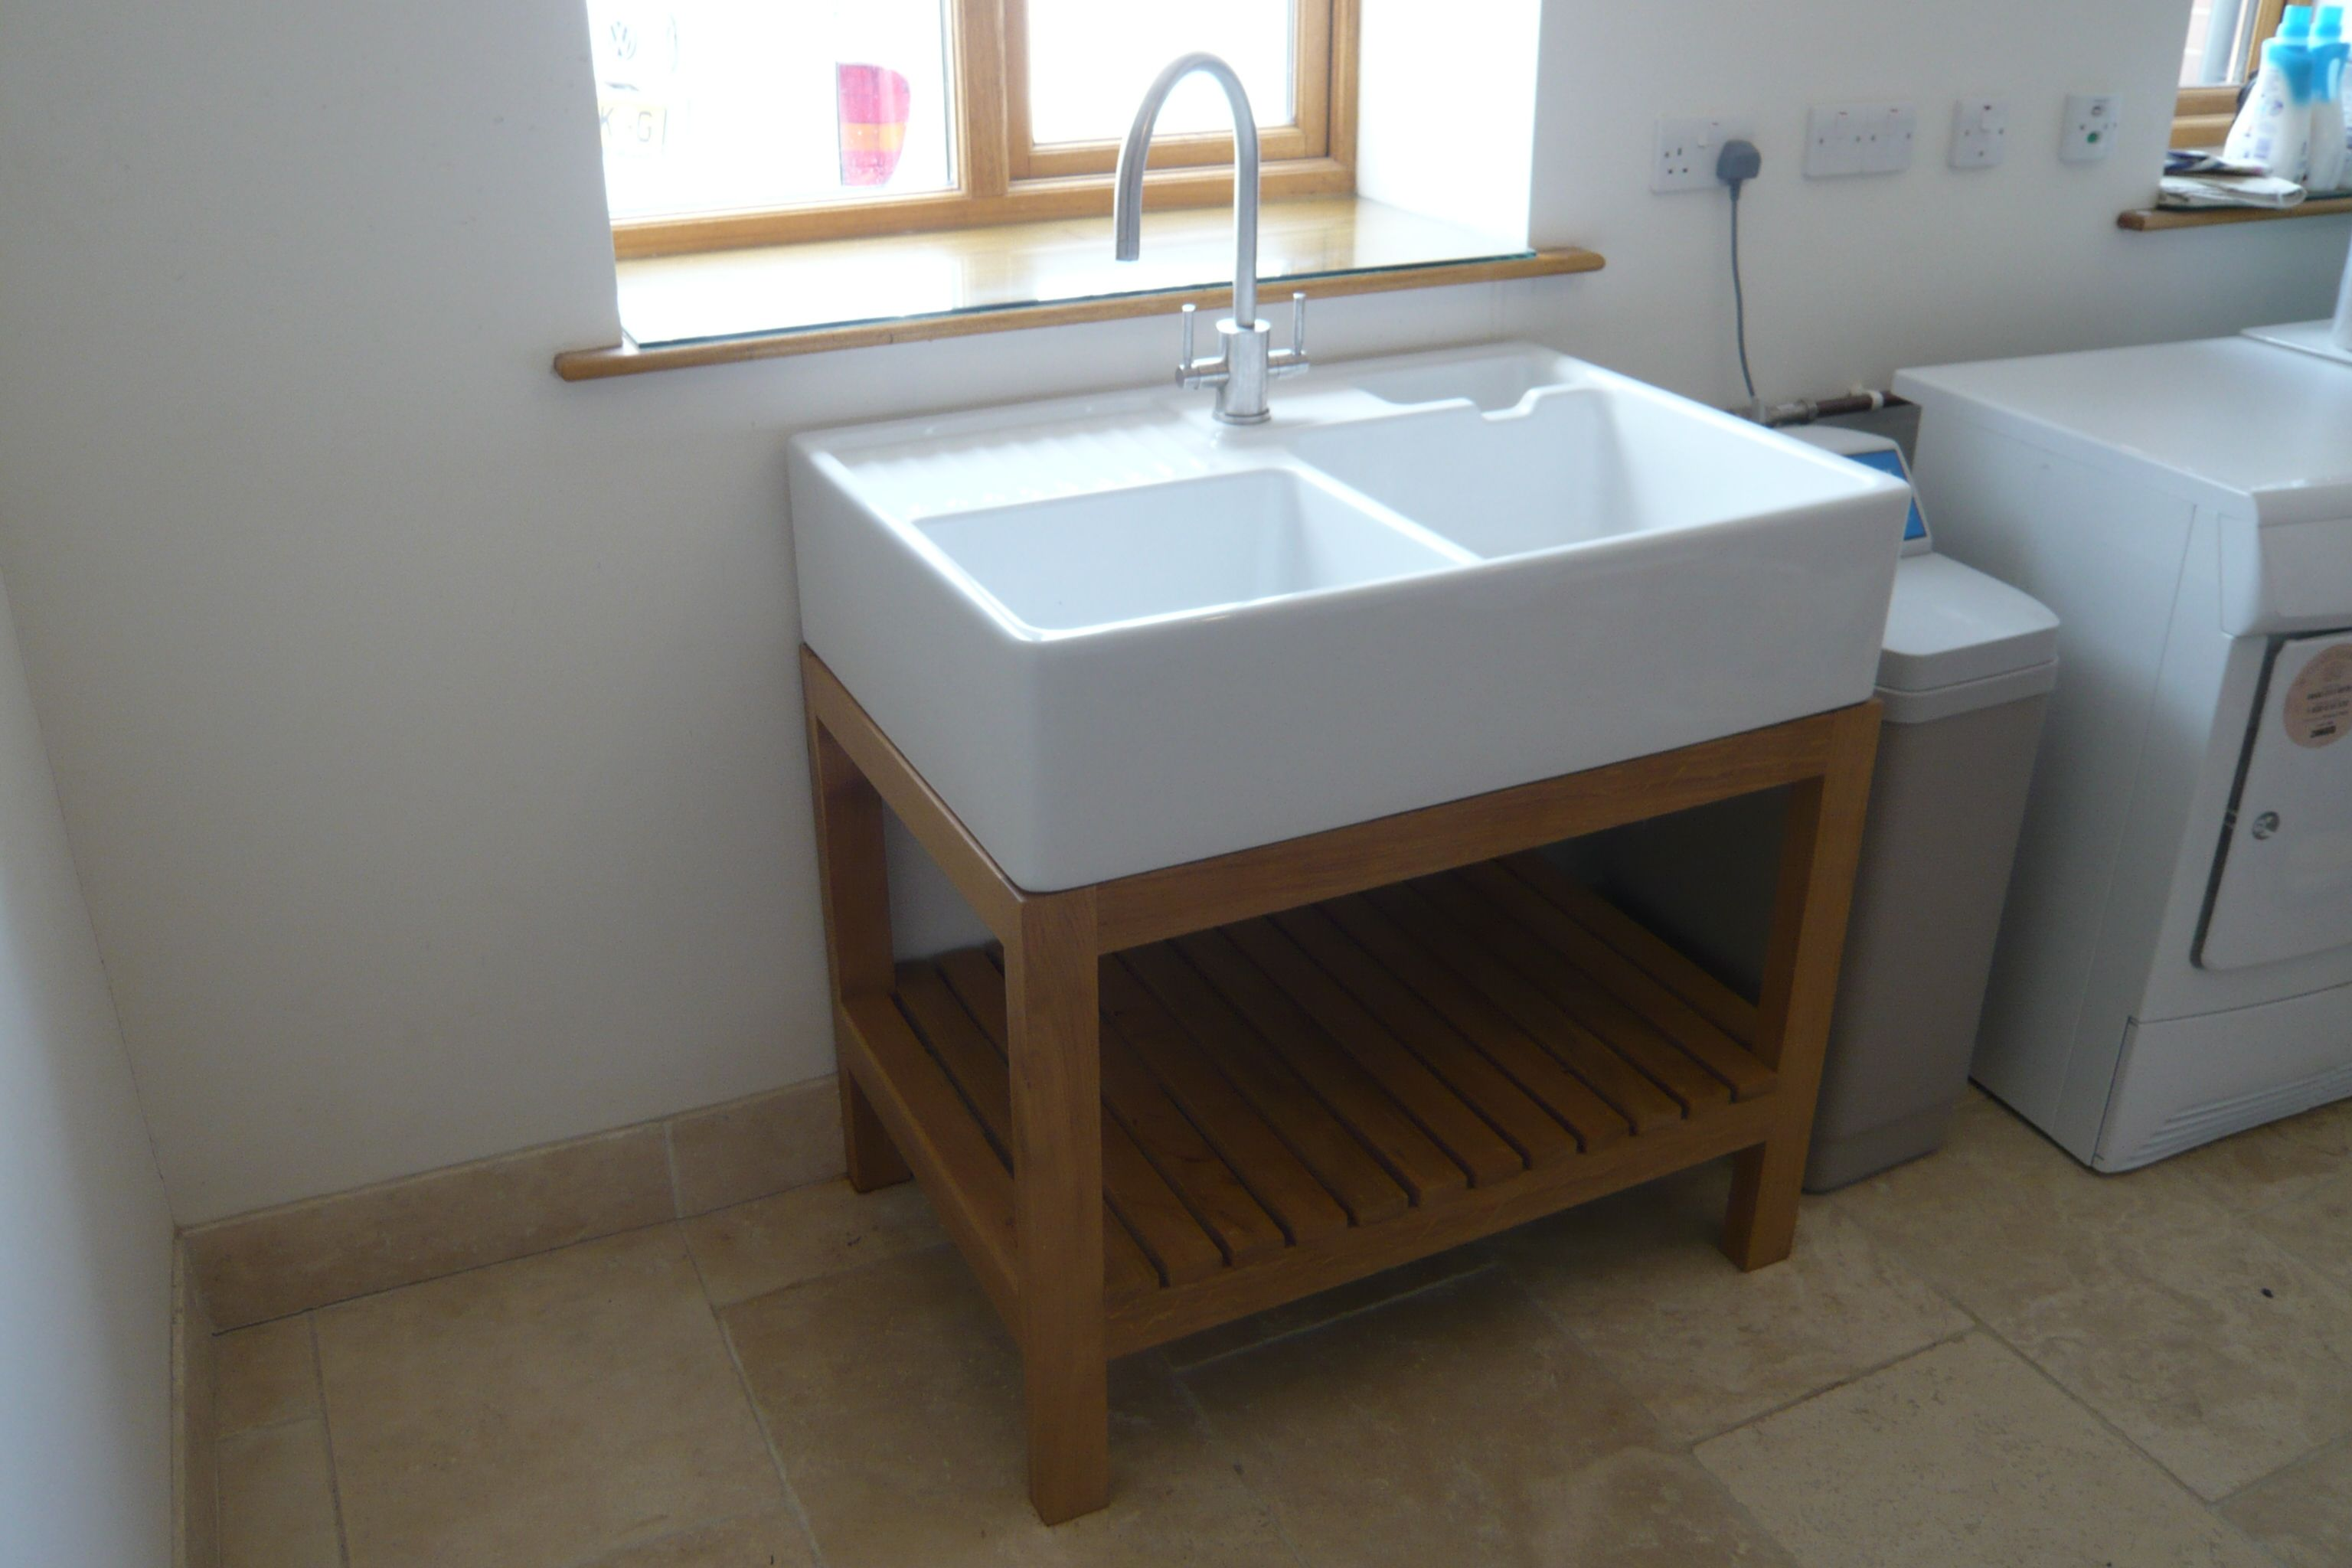 SHAKER STYLE BELFAST SINK KITCHEN UNIT 3\' WIDE COMPLETE W/TOP AND ...